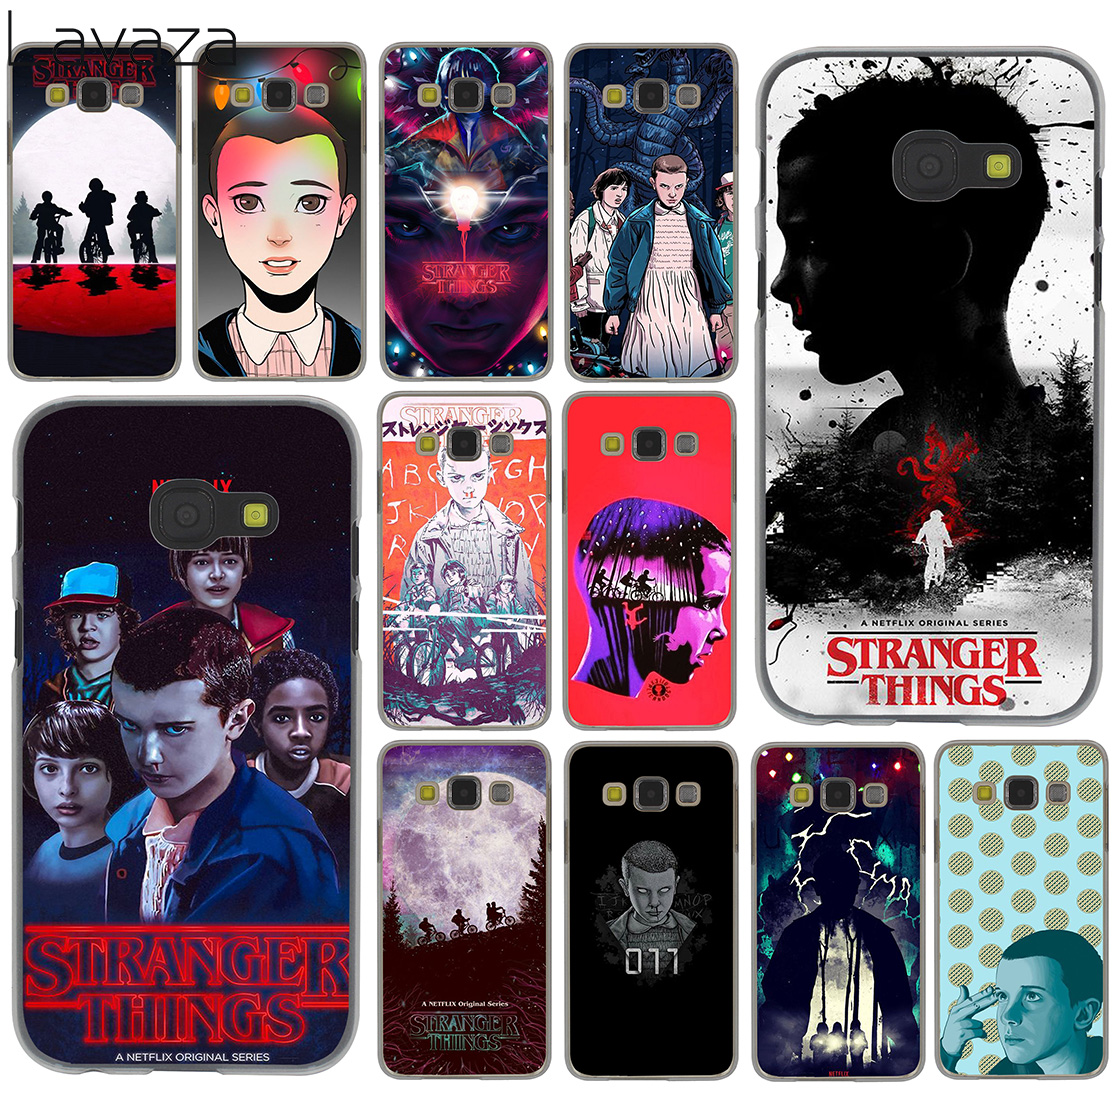 Lavaza Stranger Things tv series Hard Case for Samsung Galaxy A3 A5 J3 J5 Prime 2015 2016 2017